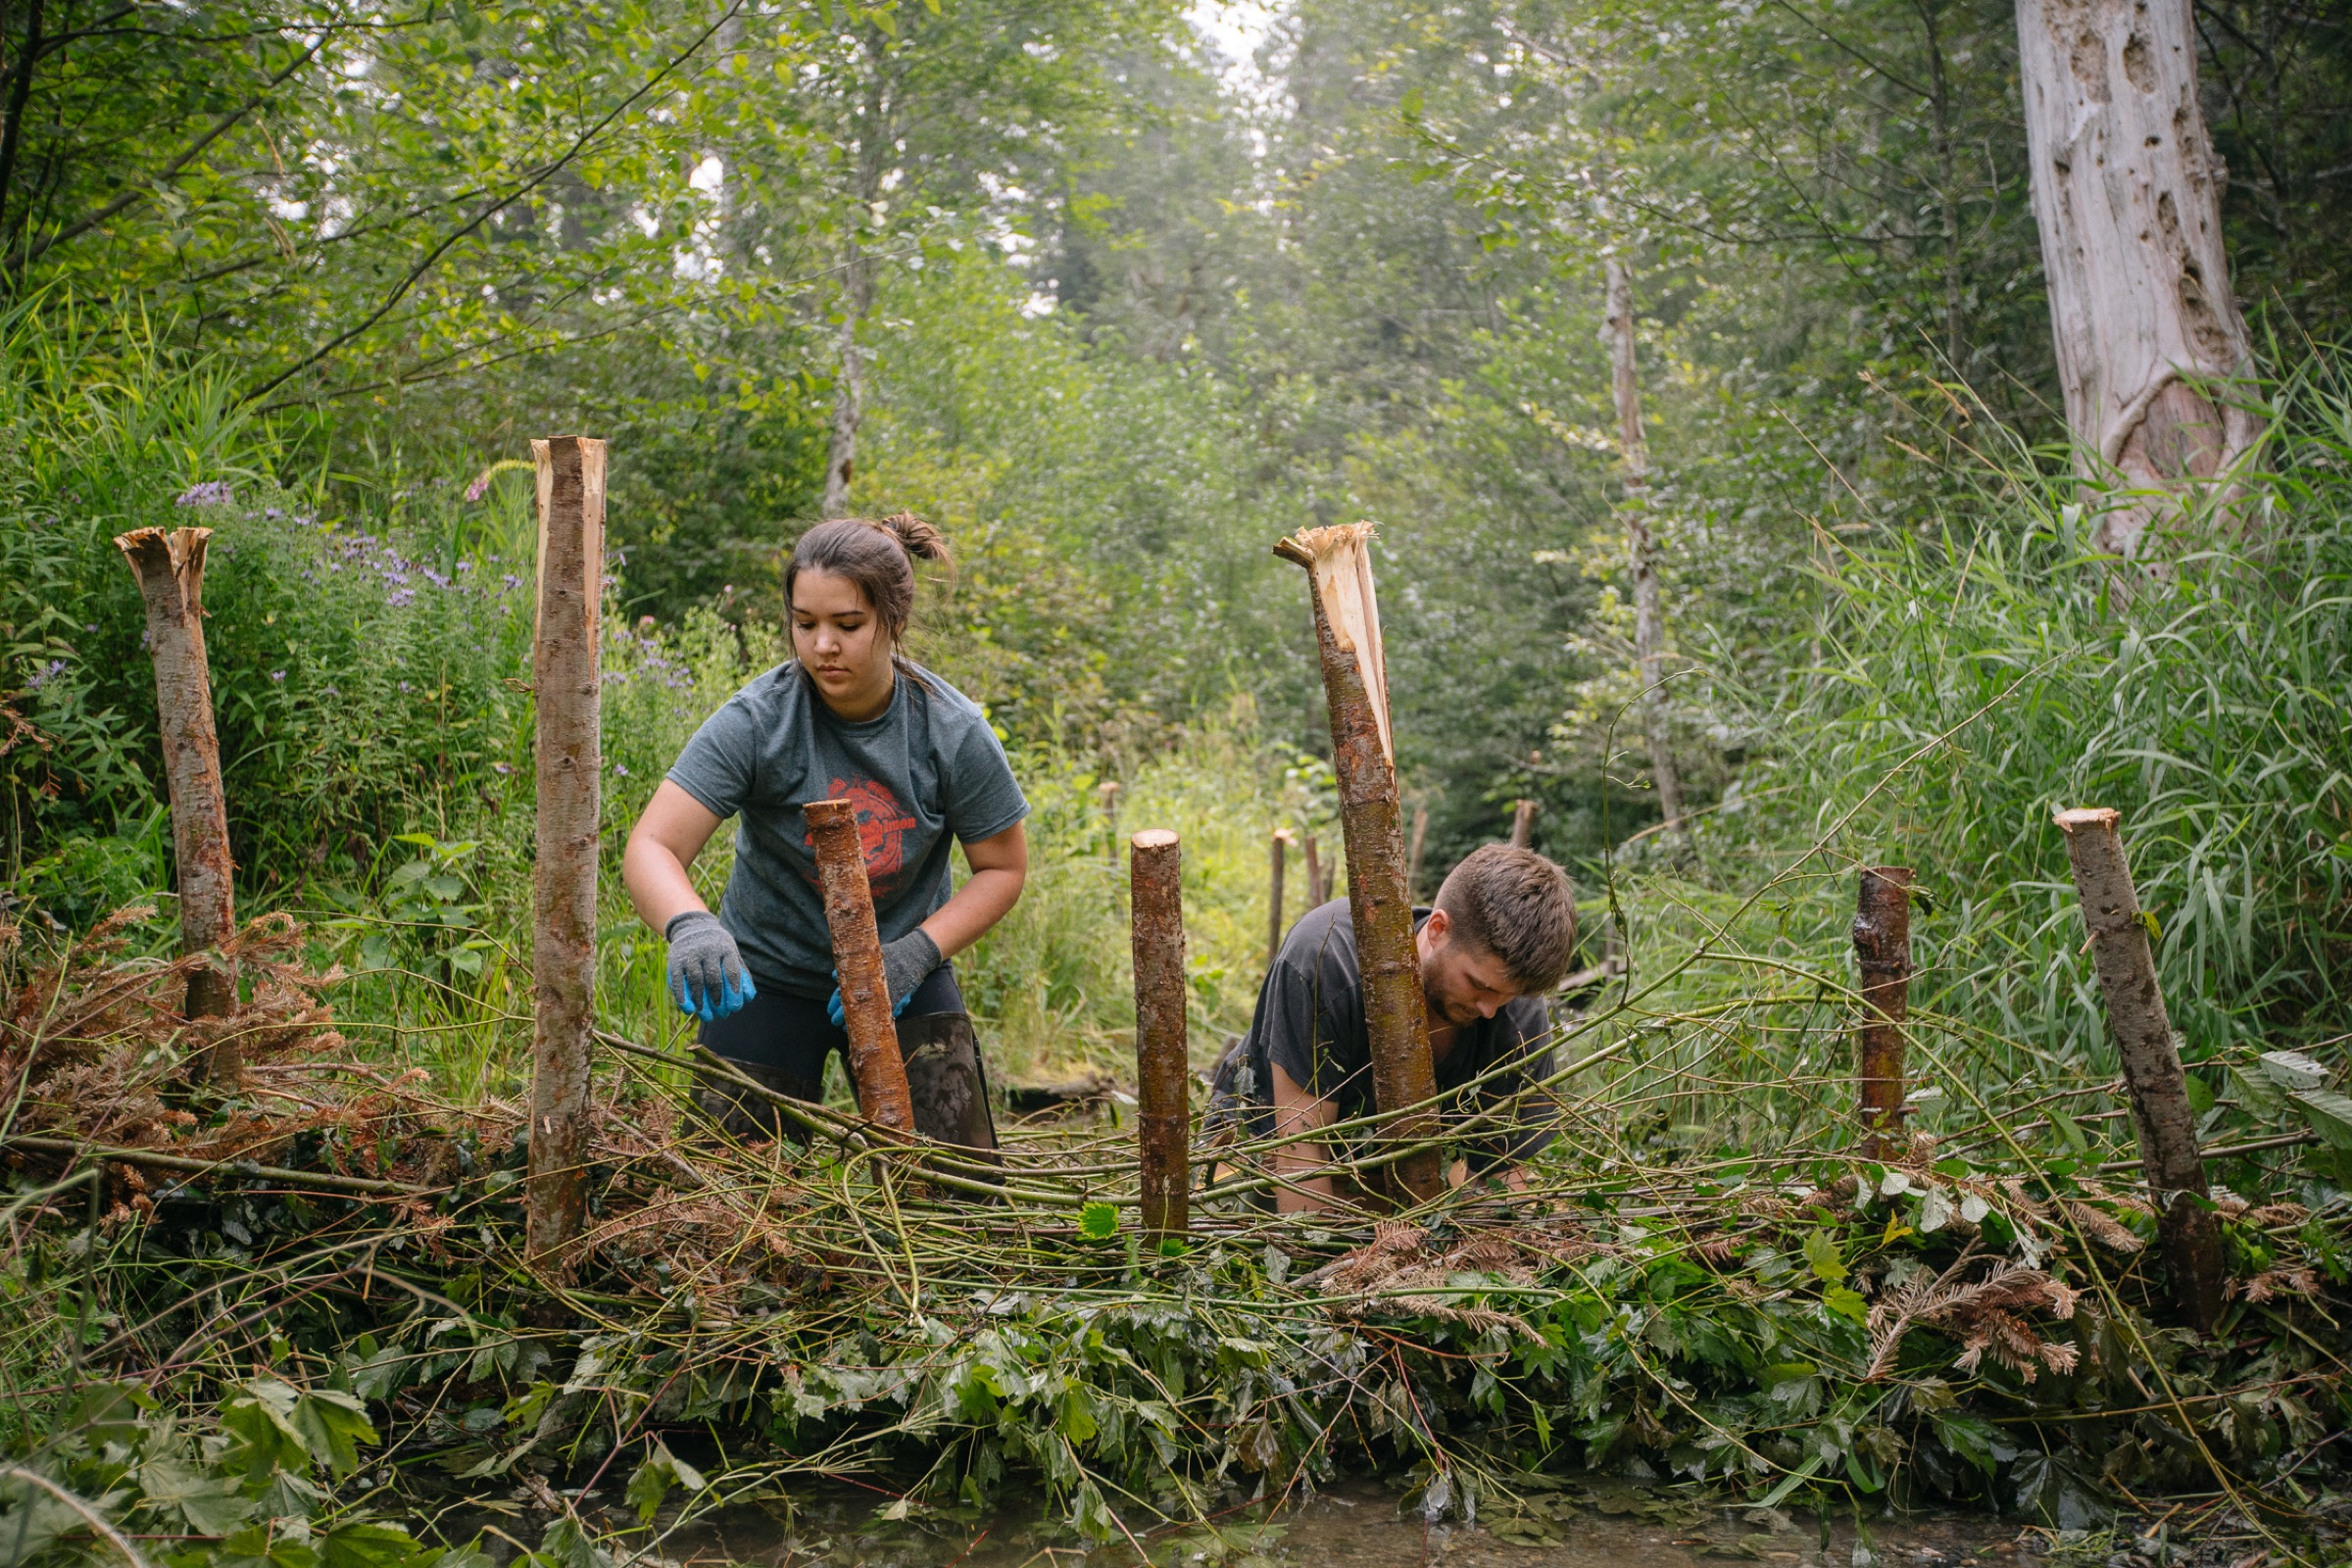 Team members weave branches and other vegetation through a framework of vertical posts to complete the dam. They hope that this temporary structure will provide relocated beavers with a home base and a head start as they begin to do their own ecological engineering.